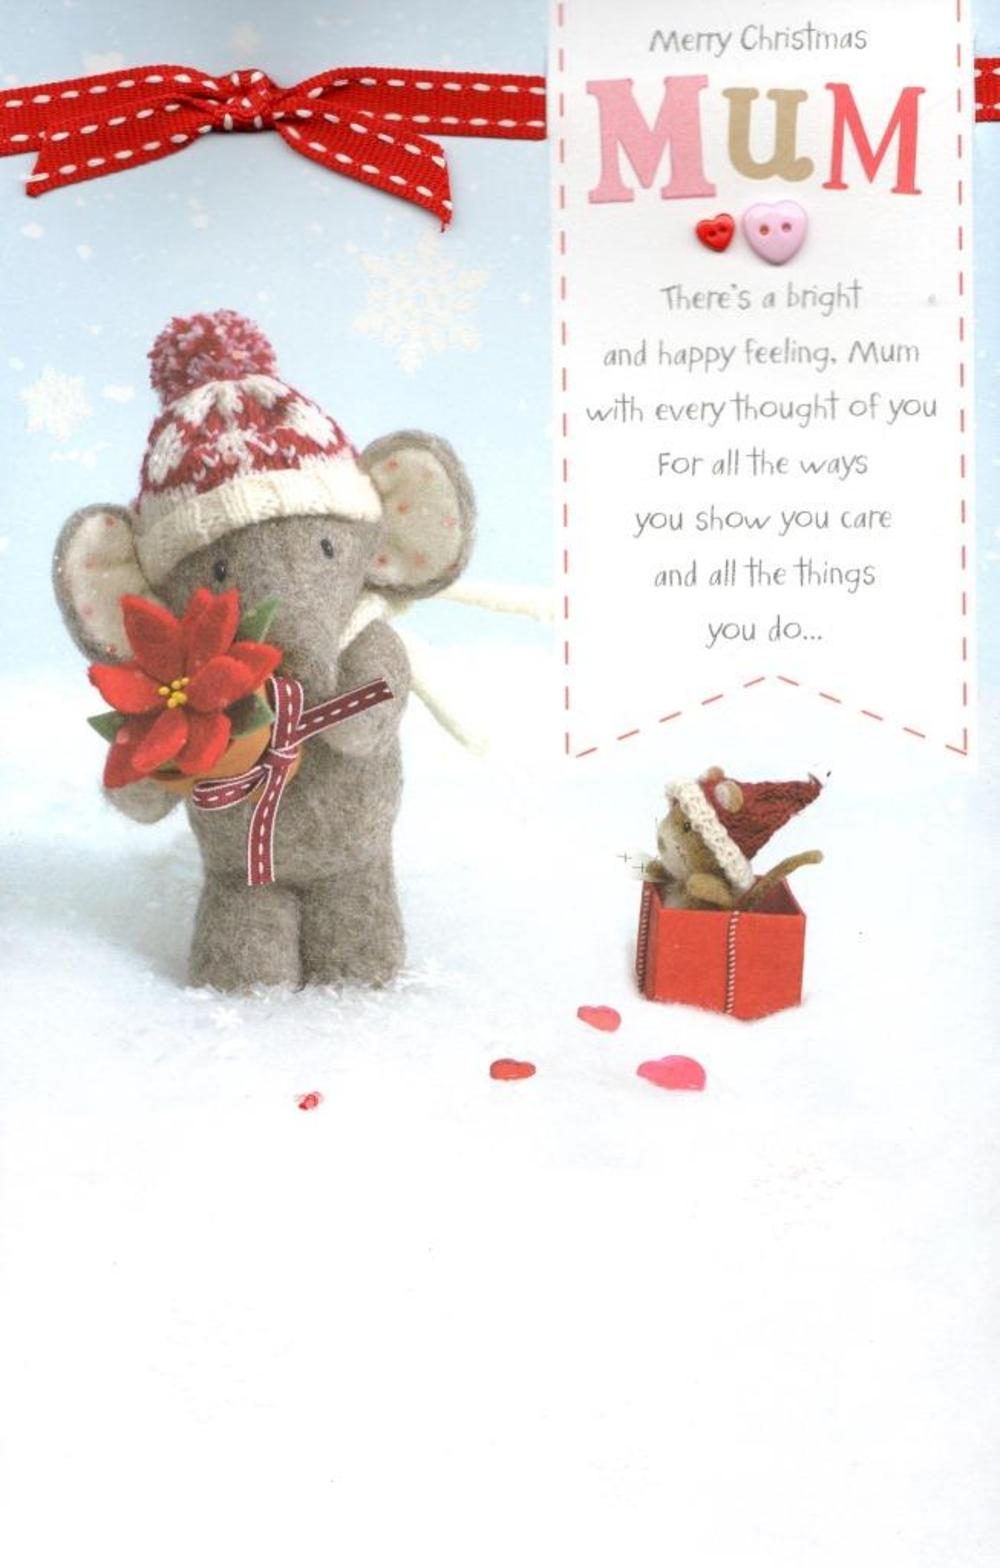 Mum Elliot & Buttons Christmas Greeting Card